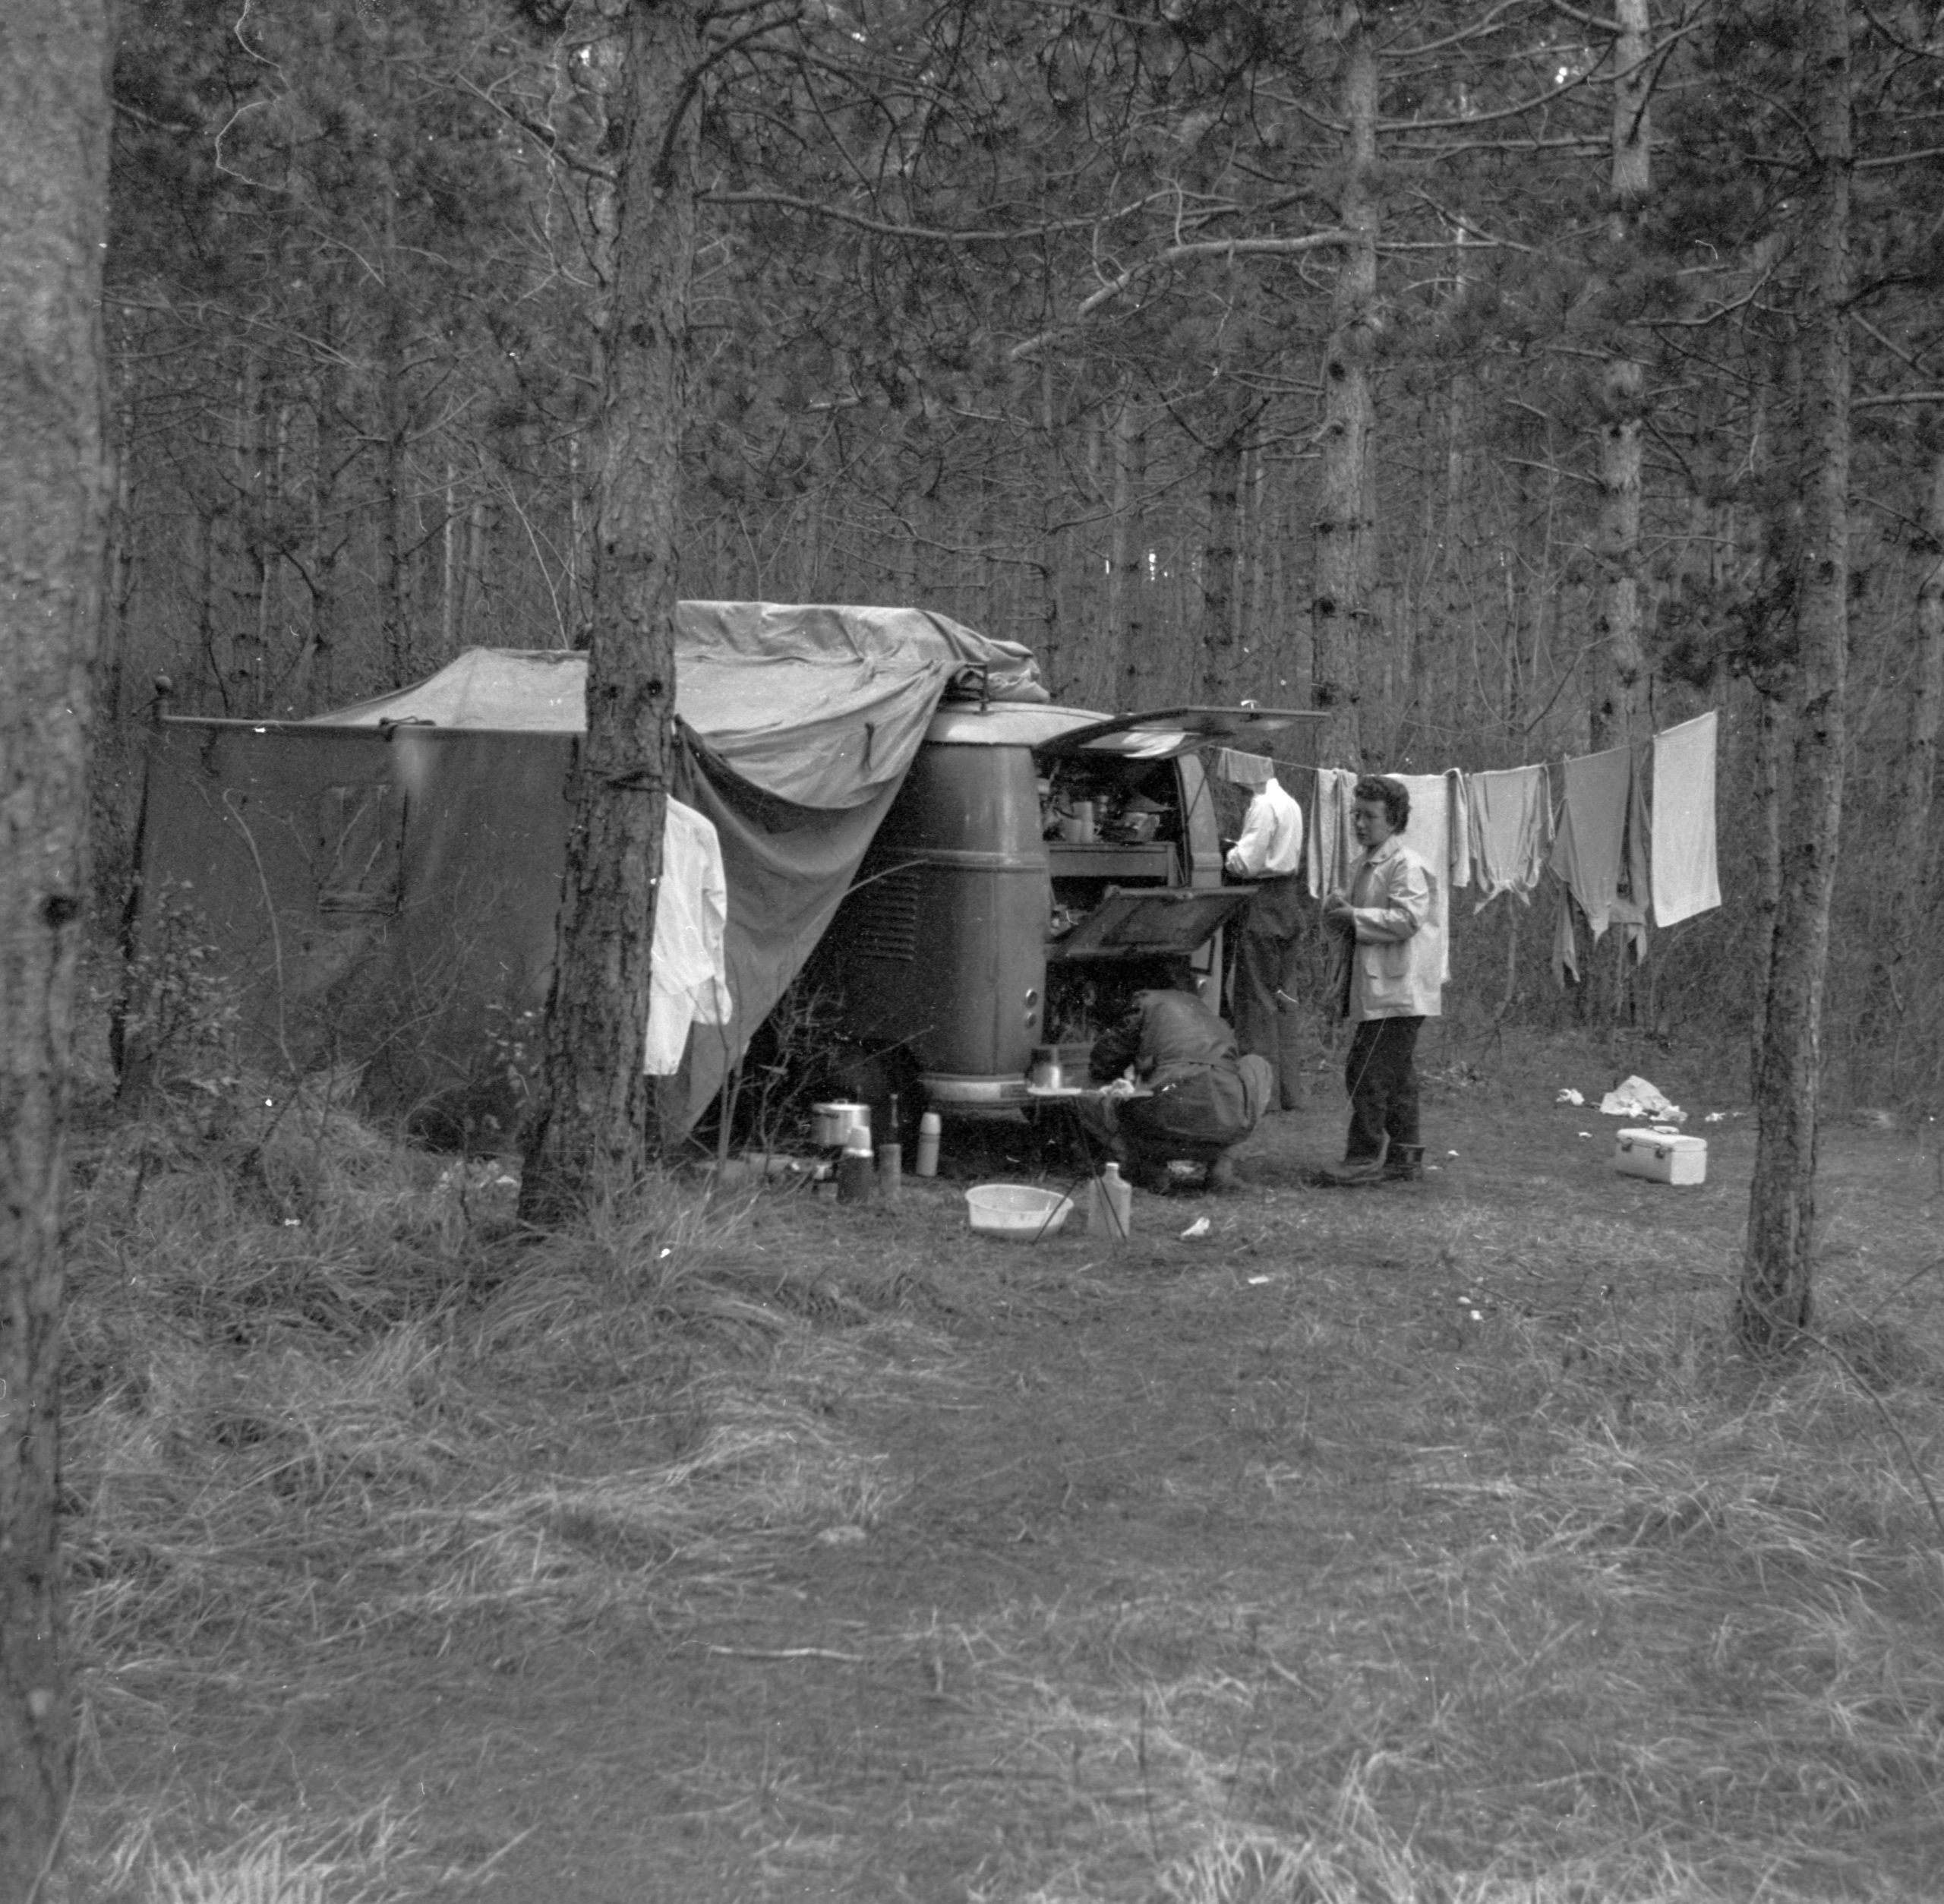 Home is a Journey - April 9 - Trieste Forest campsite